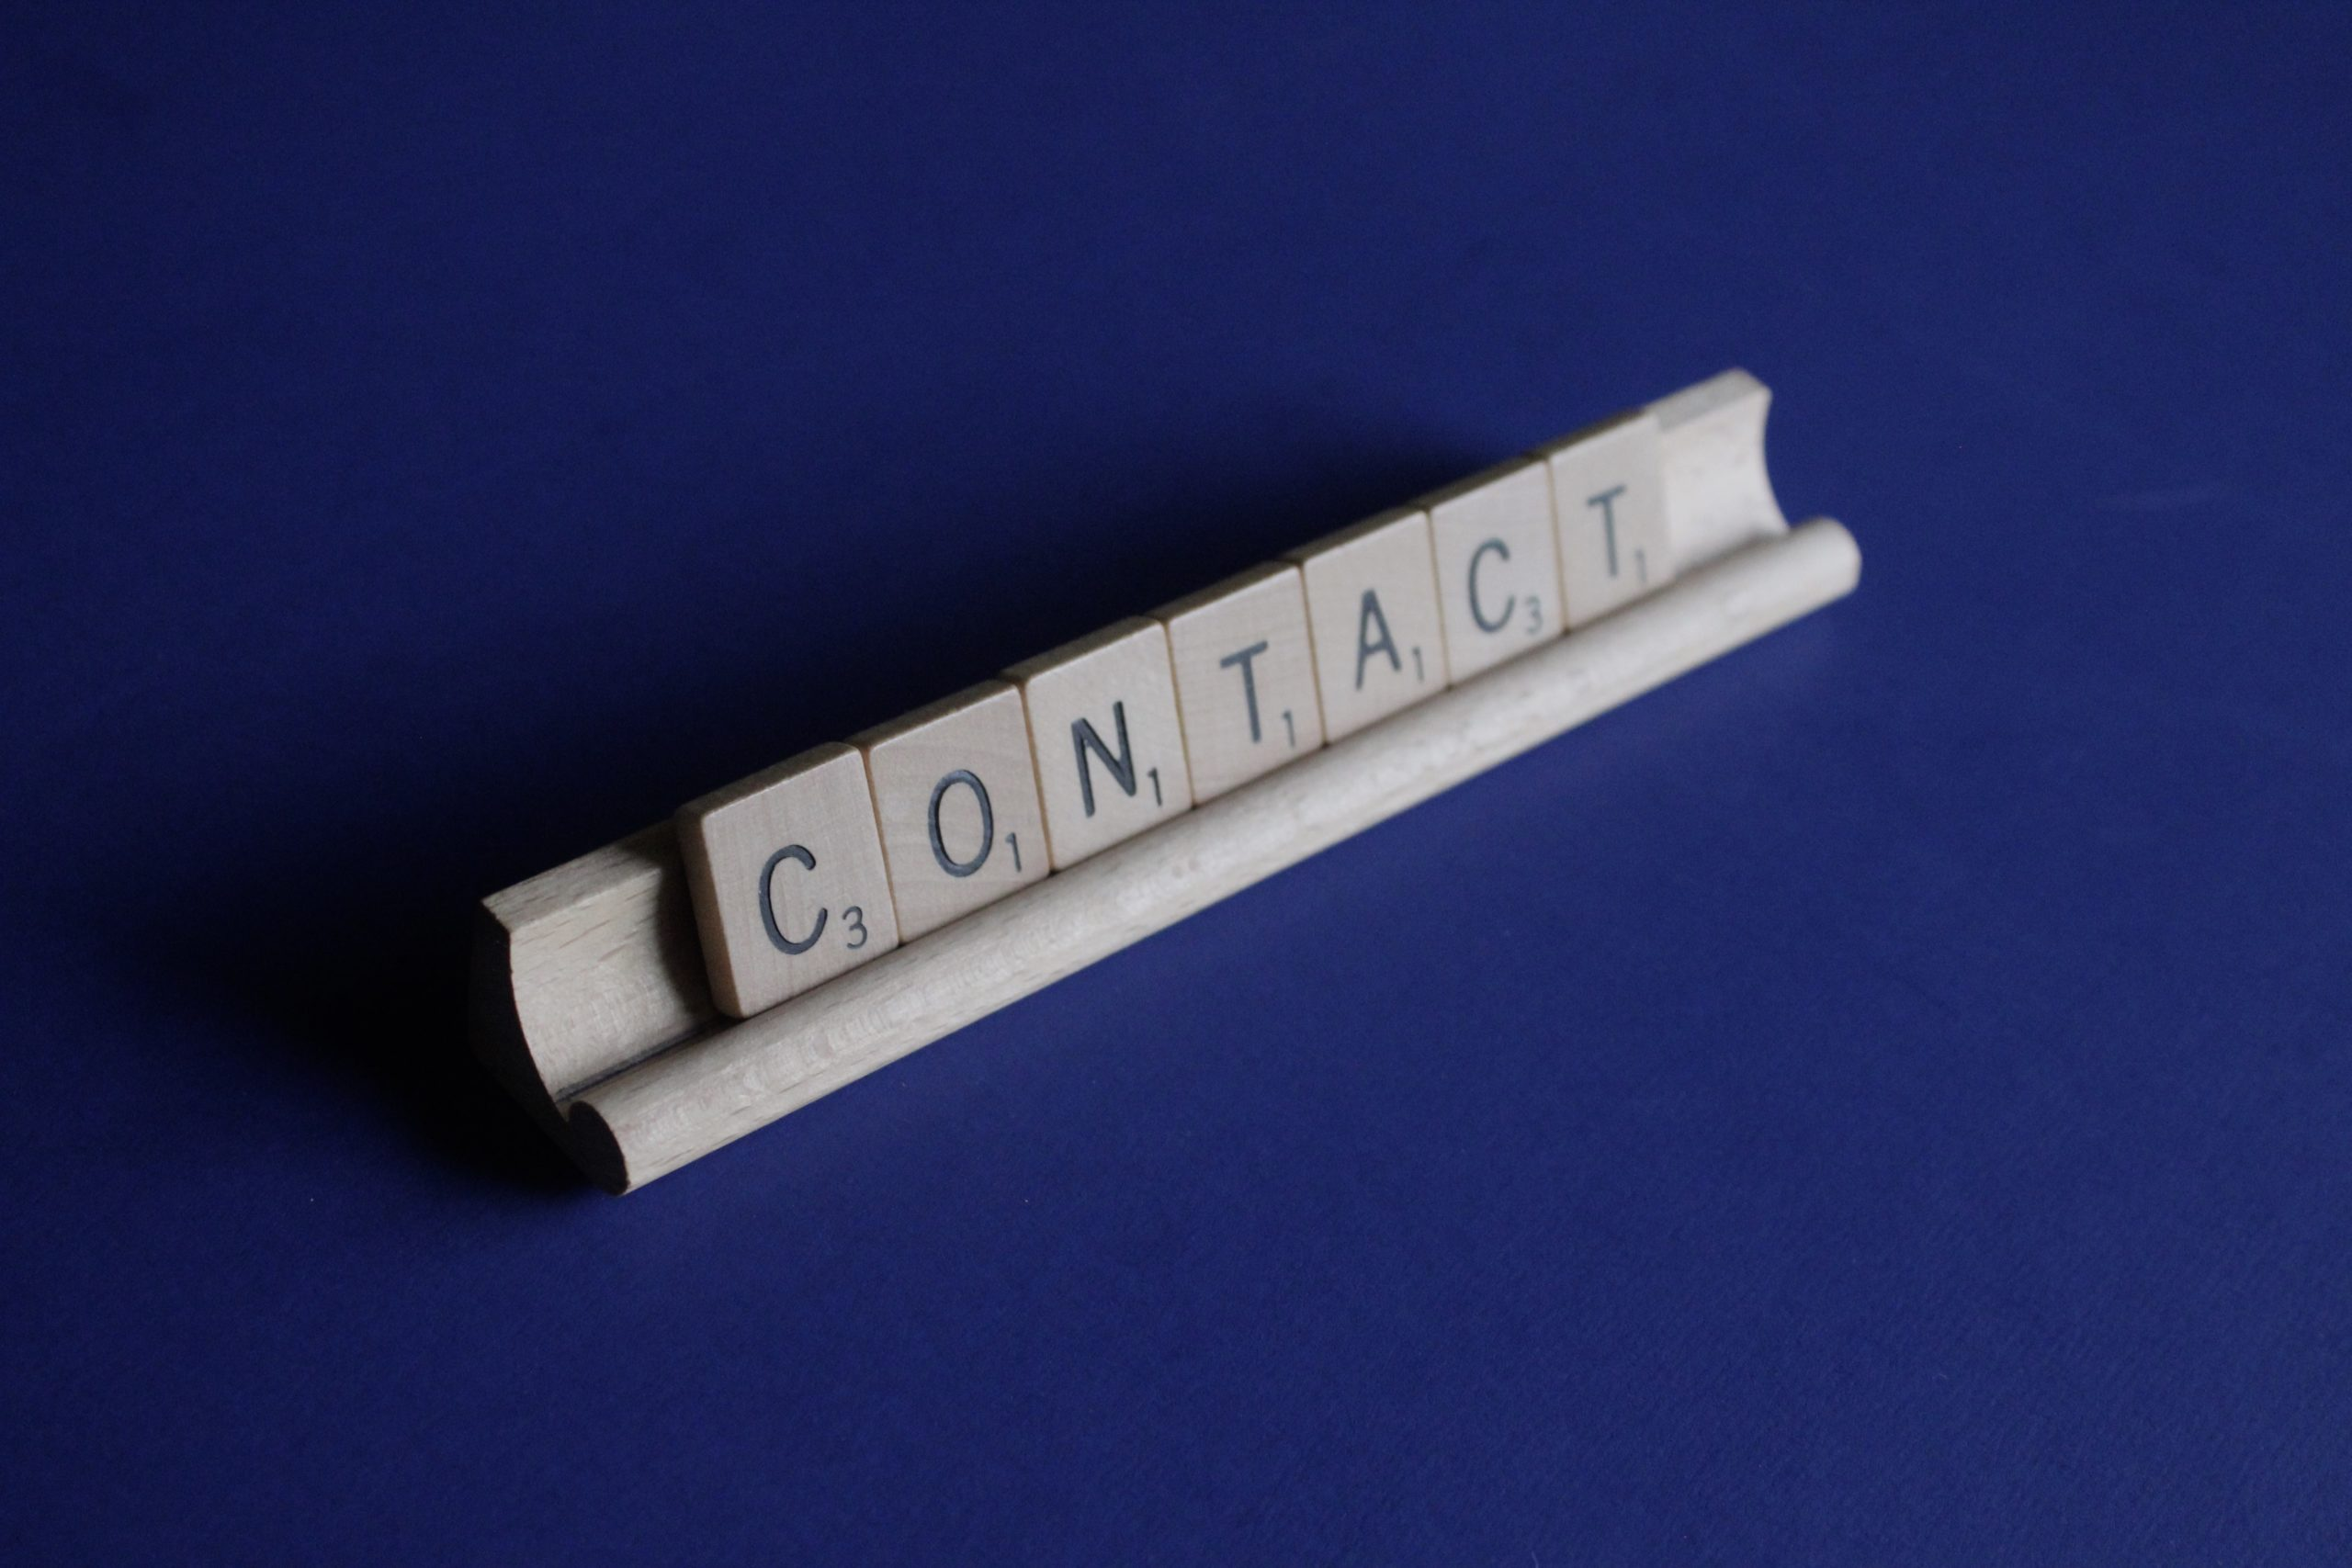 Contact spelled with Scrabble Letters